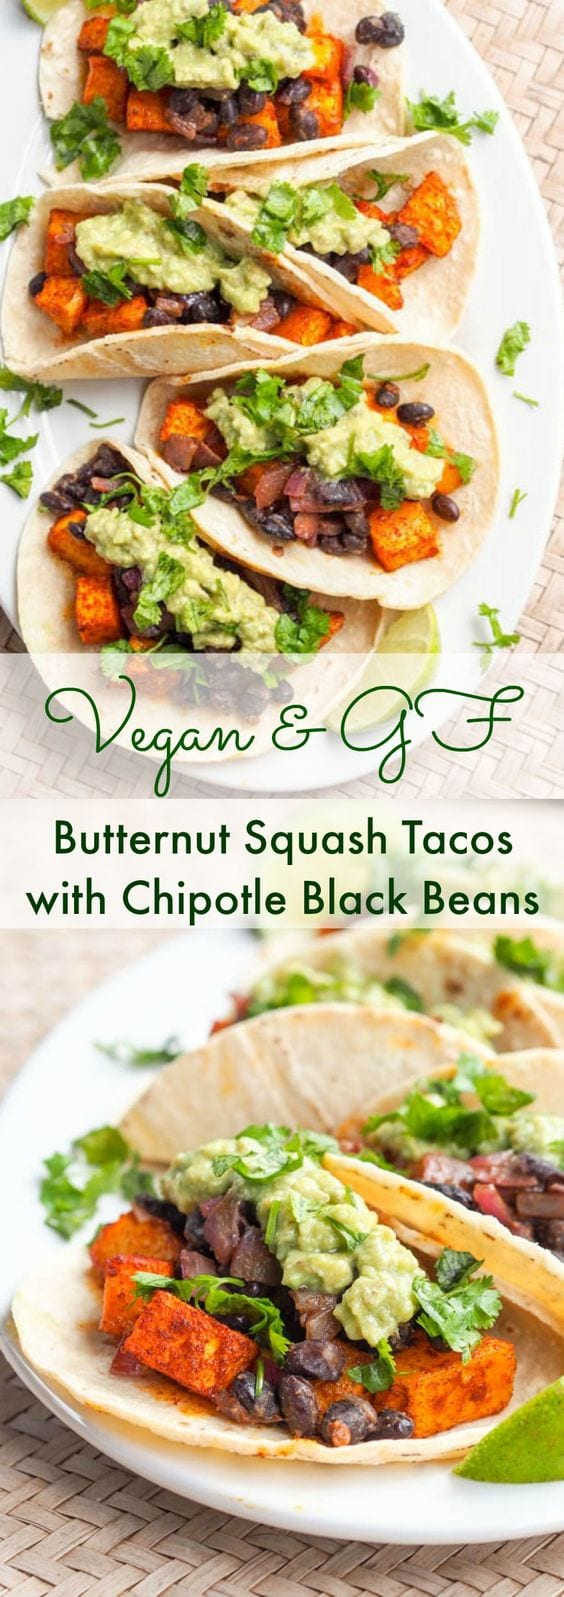 Vegan butternut squash tacos with chipotle black beans are bound to be your new favorite meal. Creamy and smoky roasted squash paired with spicy black beans, crunchy red onions, citrusy lime juice, and creamy avocado crema, all wrapped up in a small soft corn tortilla. Gluten free too. #tacos #mexican #vegan #cincodemayo #healthy